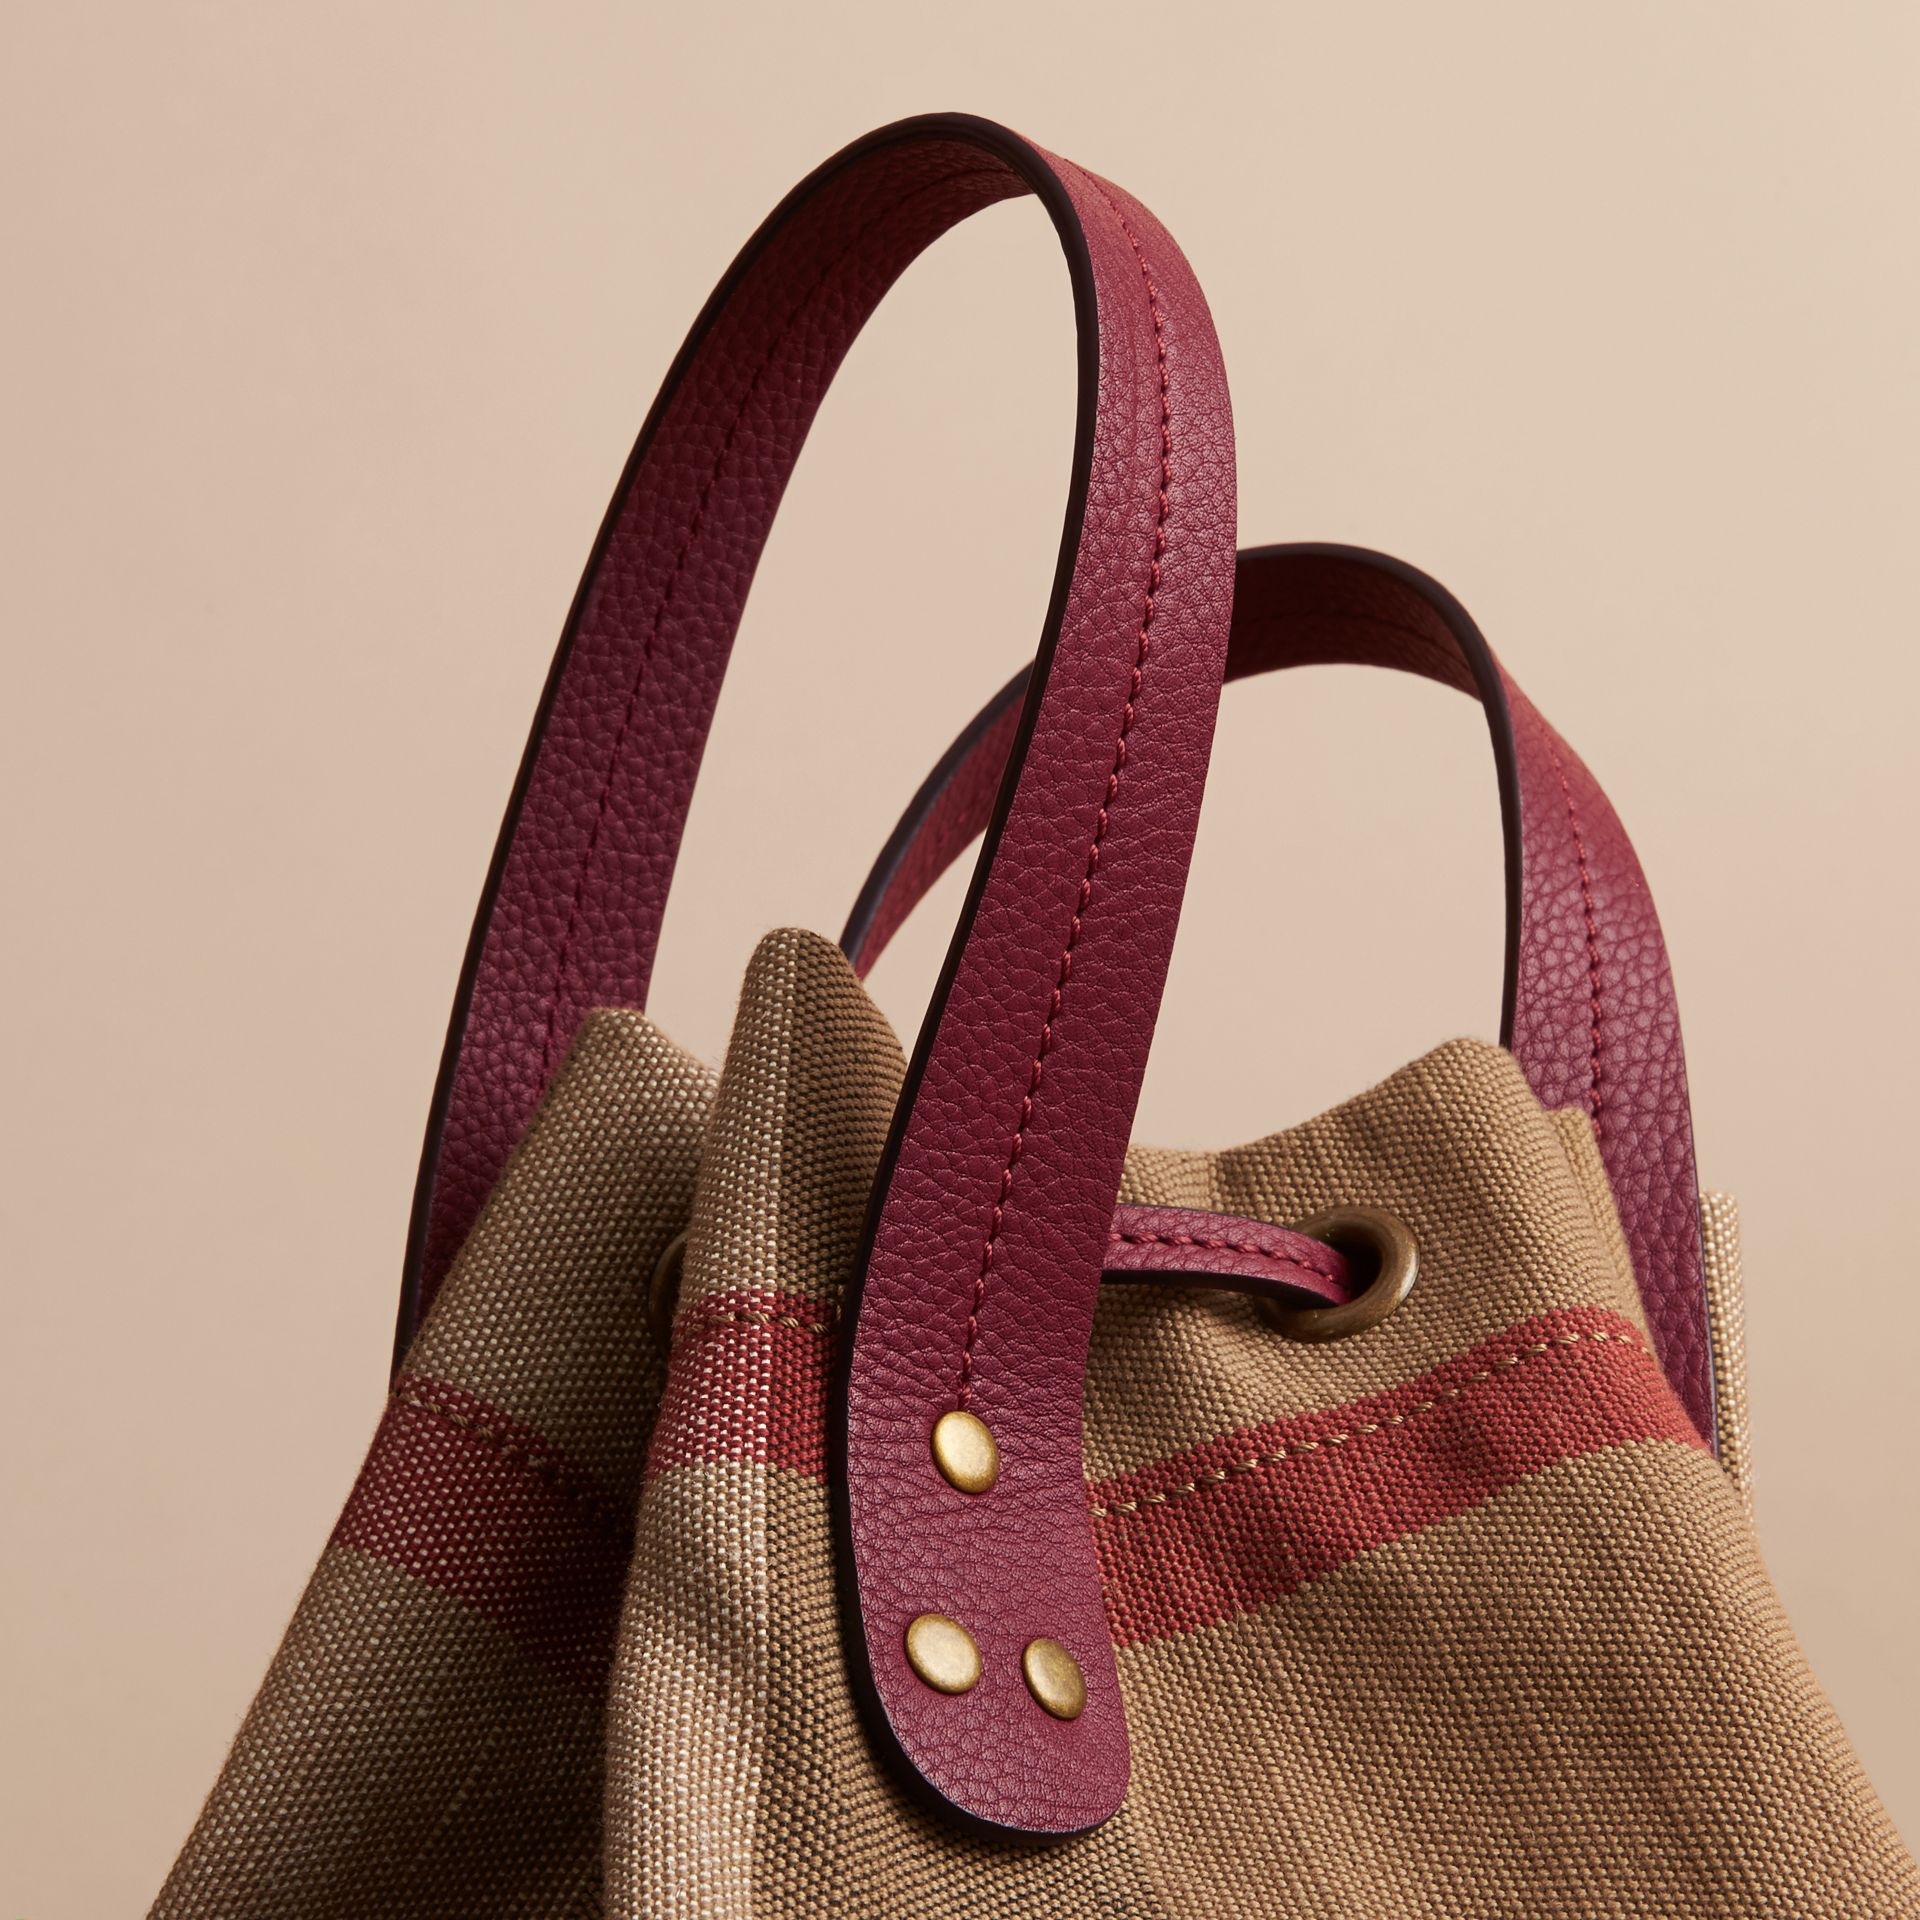 Medium Canvas Check and Leather Bucket Bag in Burgundy Red - Women | Burberry - gallery image 2